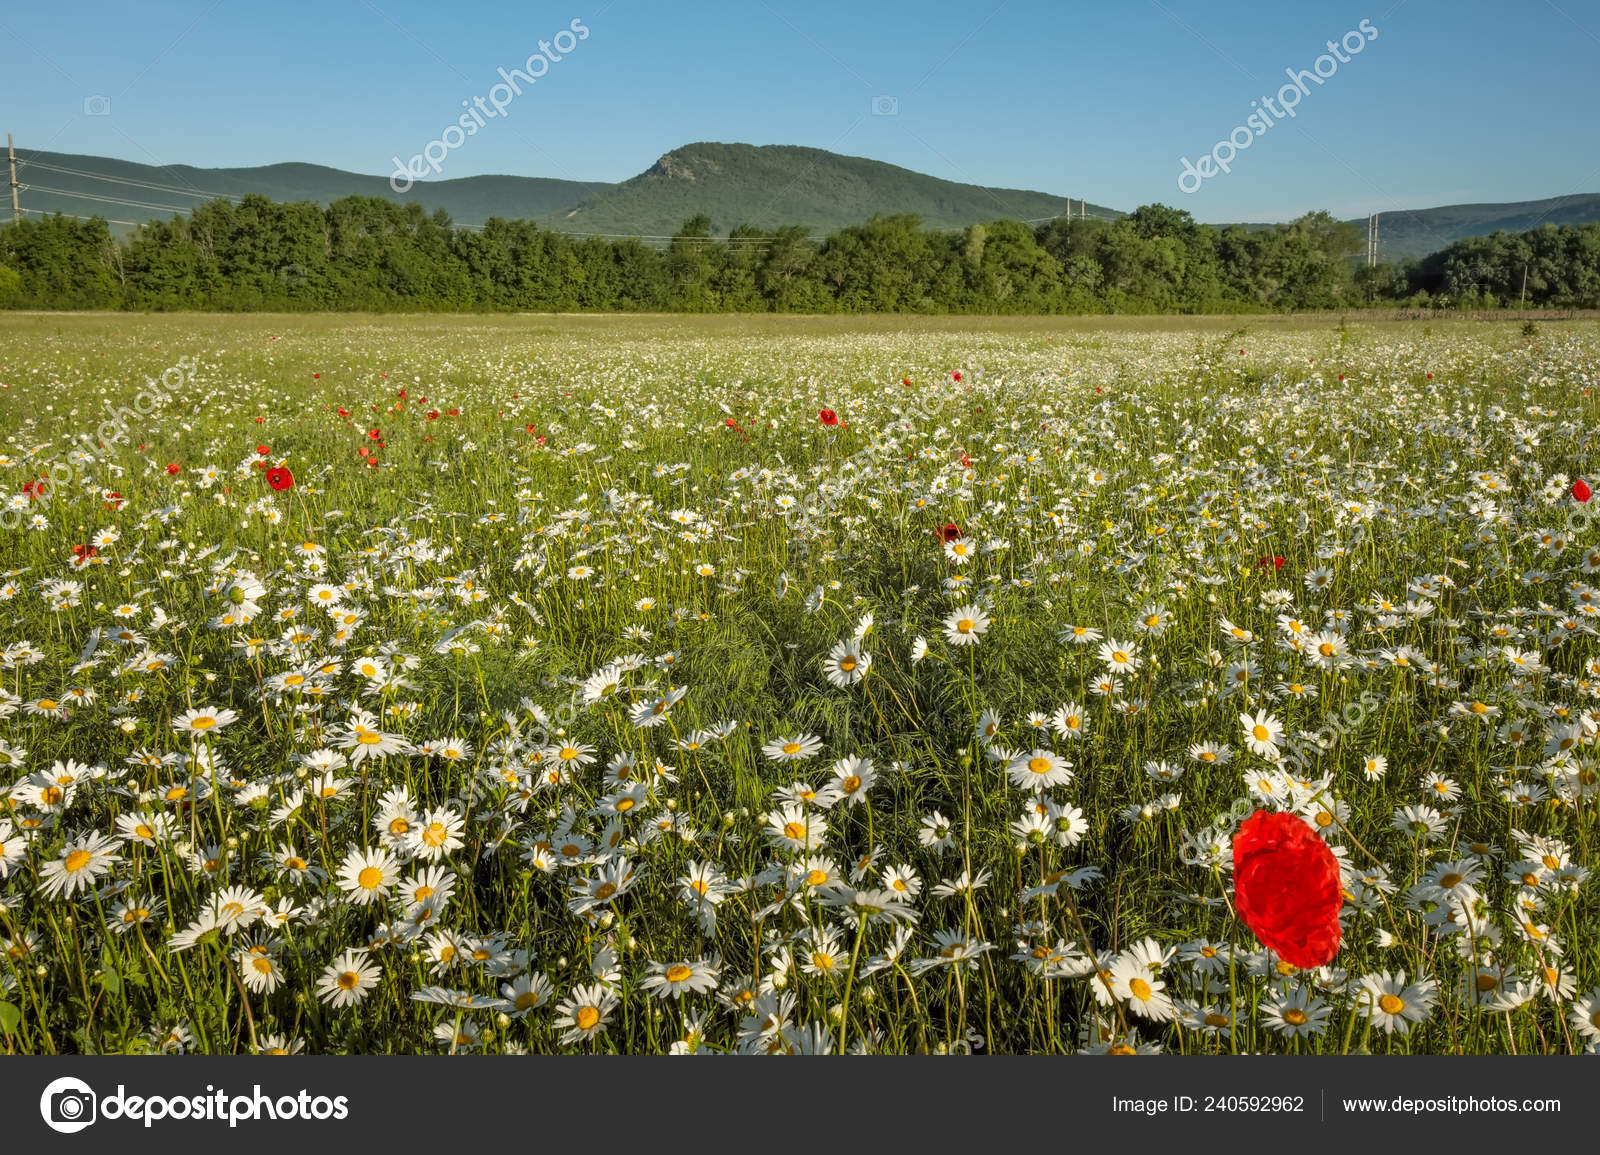 Daisies Poppies Field Mountains Meadow Flowers Sunrise